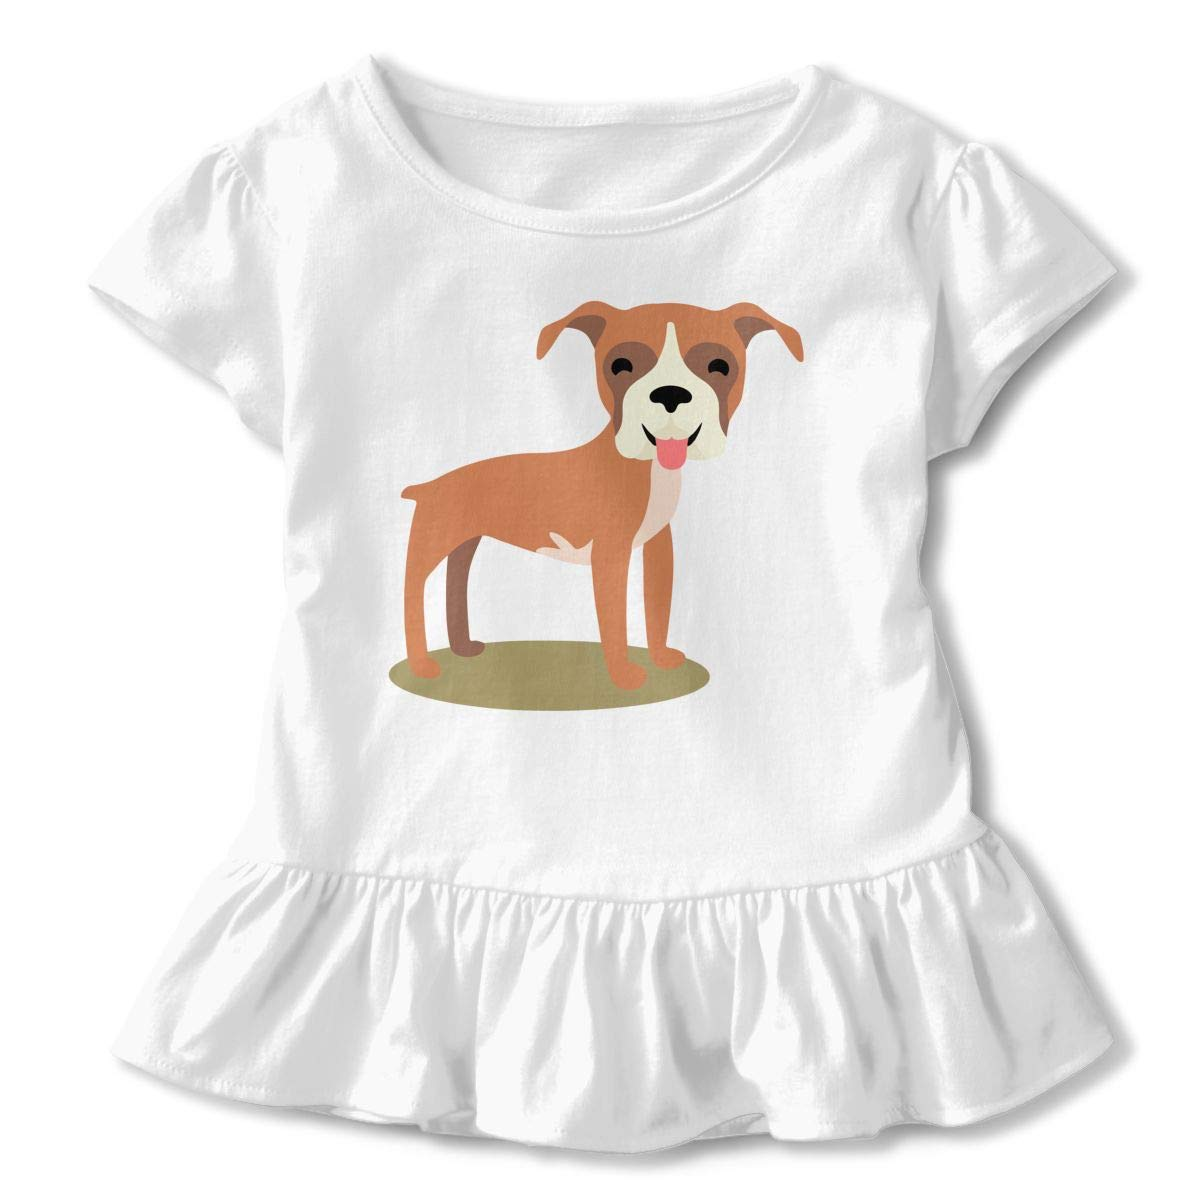 HYBDX9T Toddler Baby Girl Boxer Dog Funny Short Sleeve Cotton T Shirts Basic Tops Tee Clothes